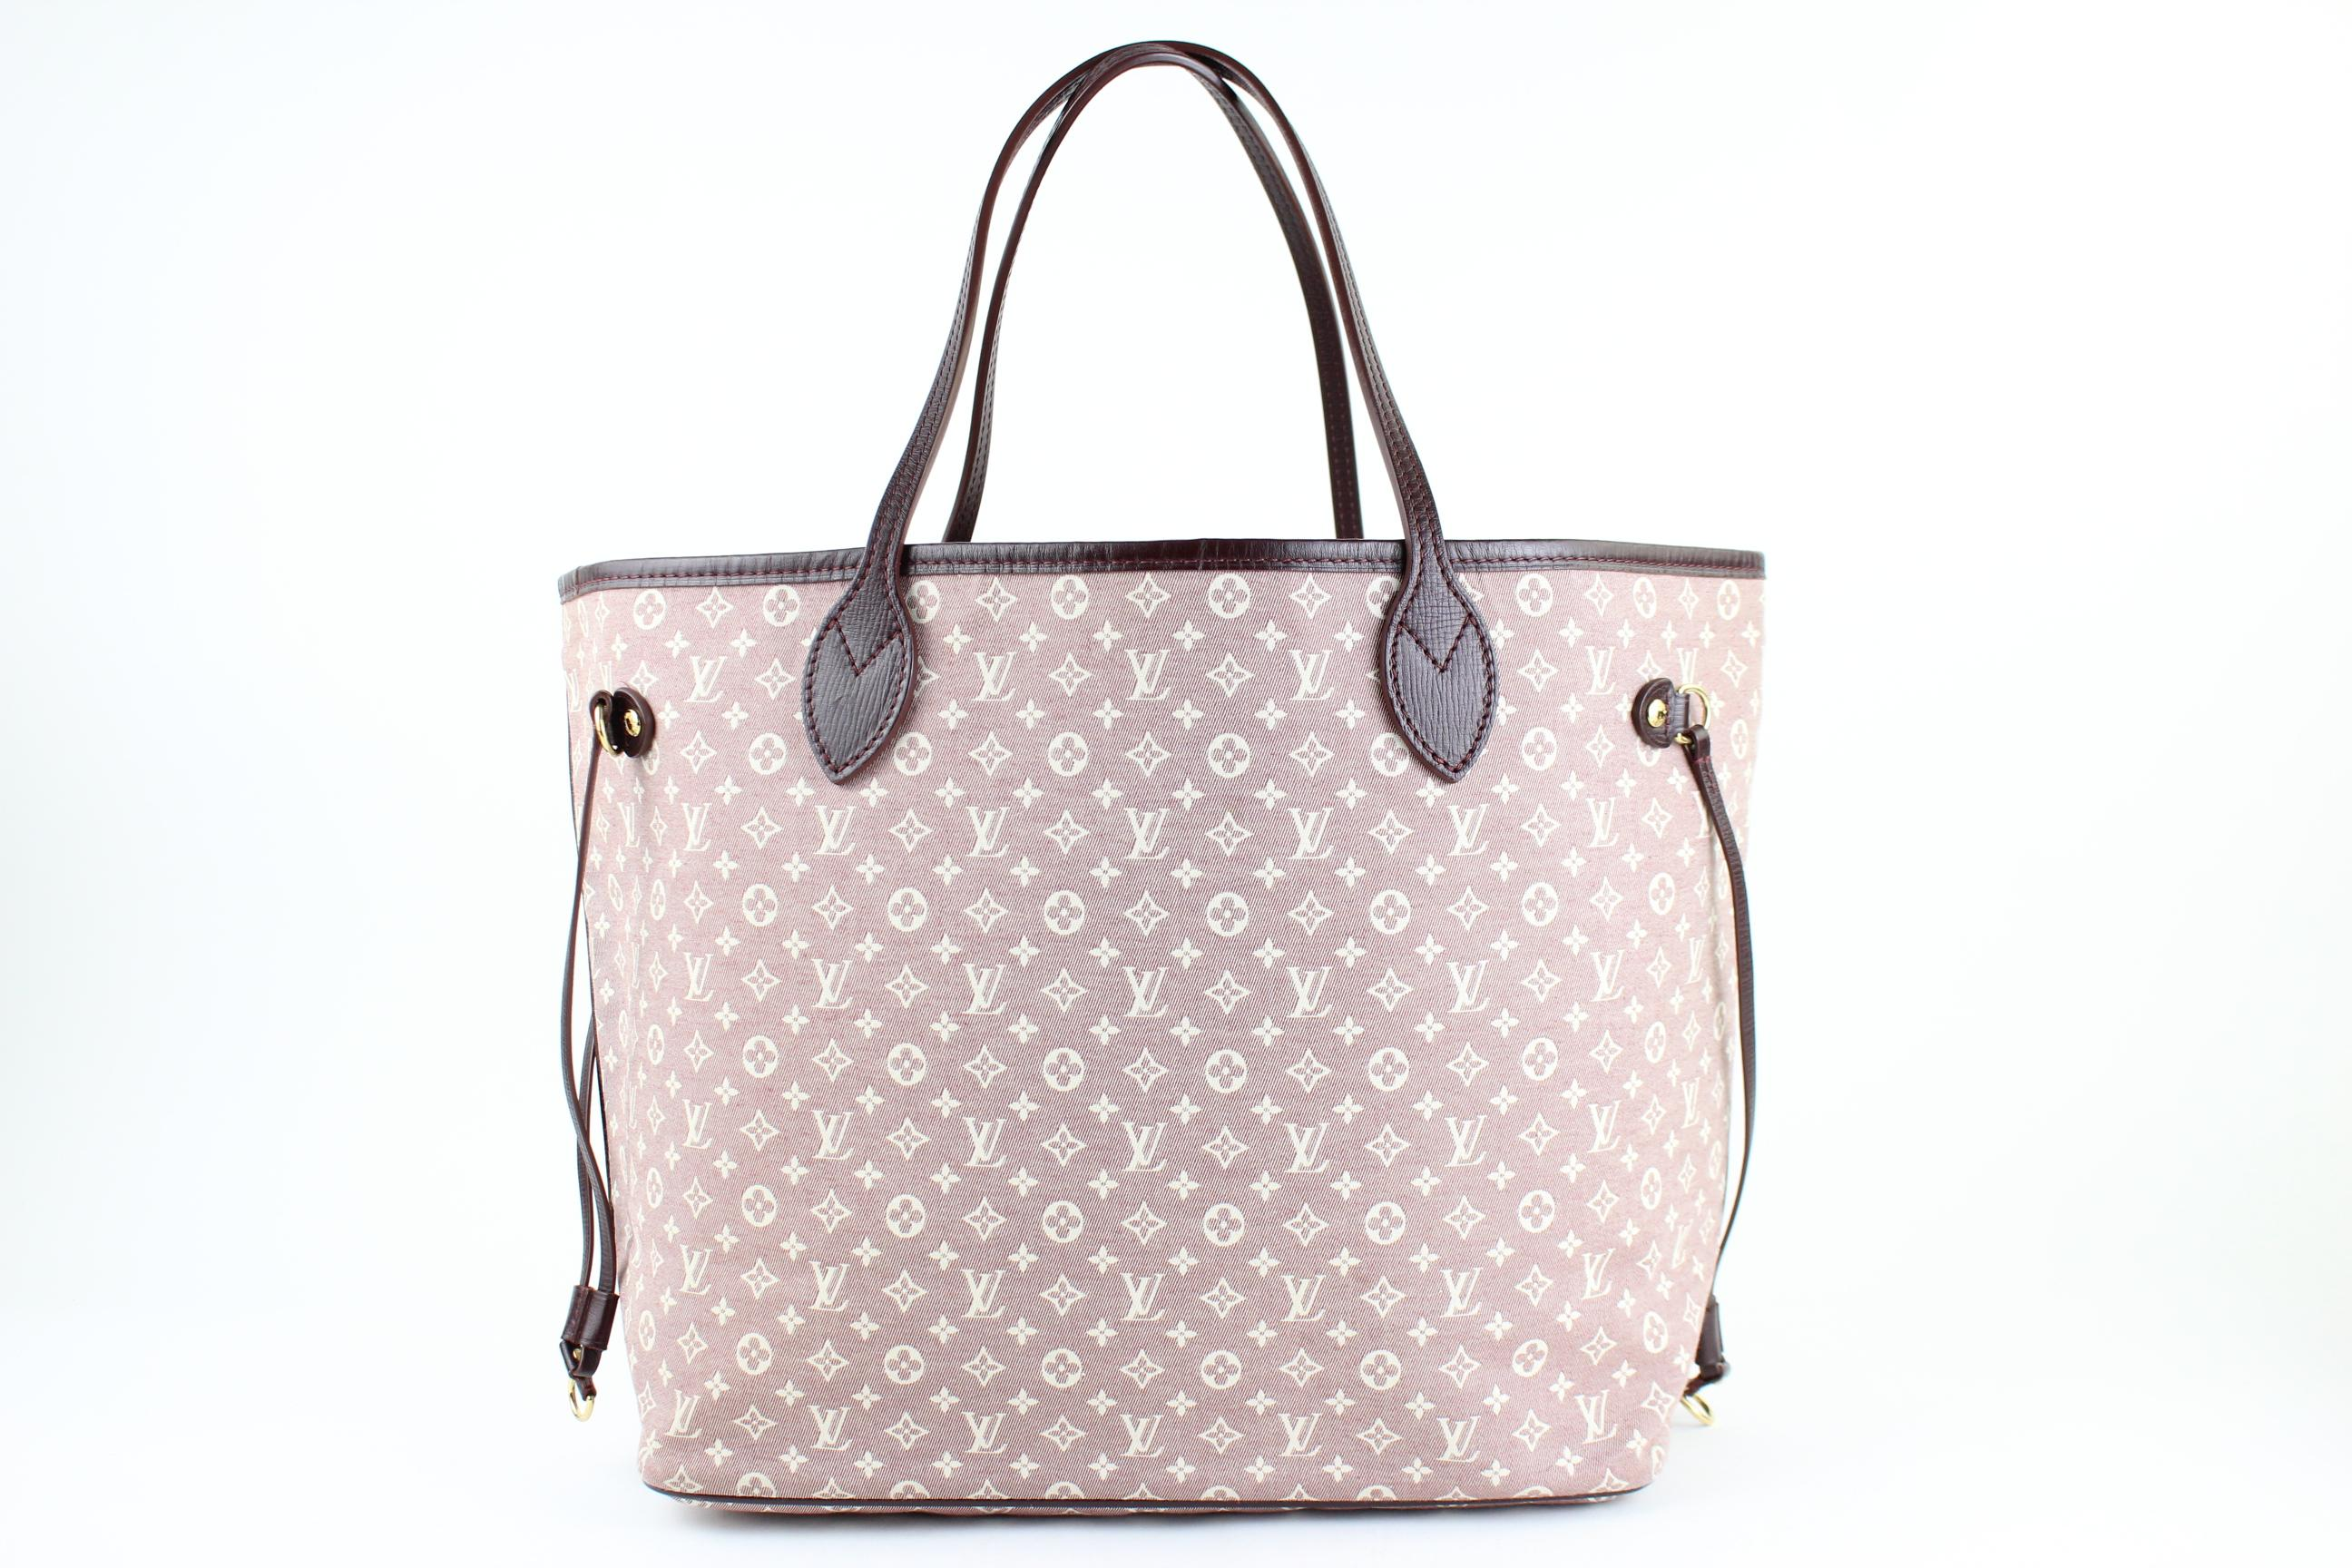 louis vuitton neverfull white. louis vuitton neverfull mm damier ebene limited edition denim tote shoulder bag white 7